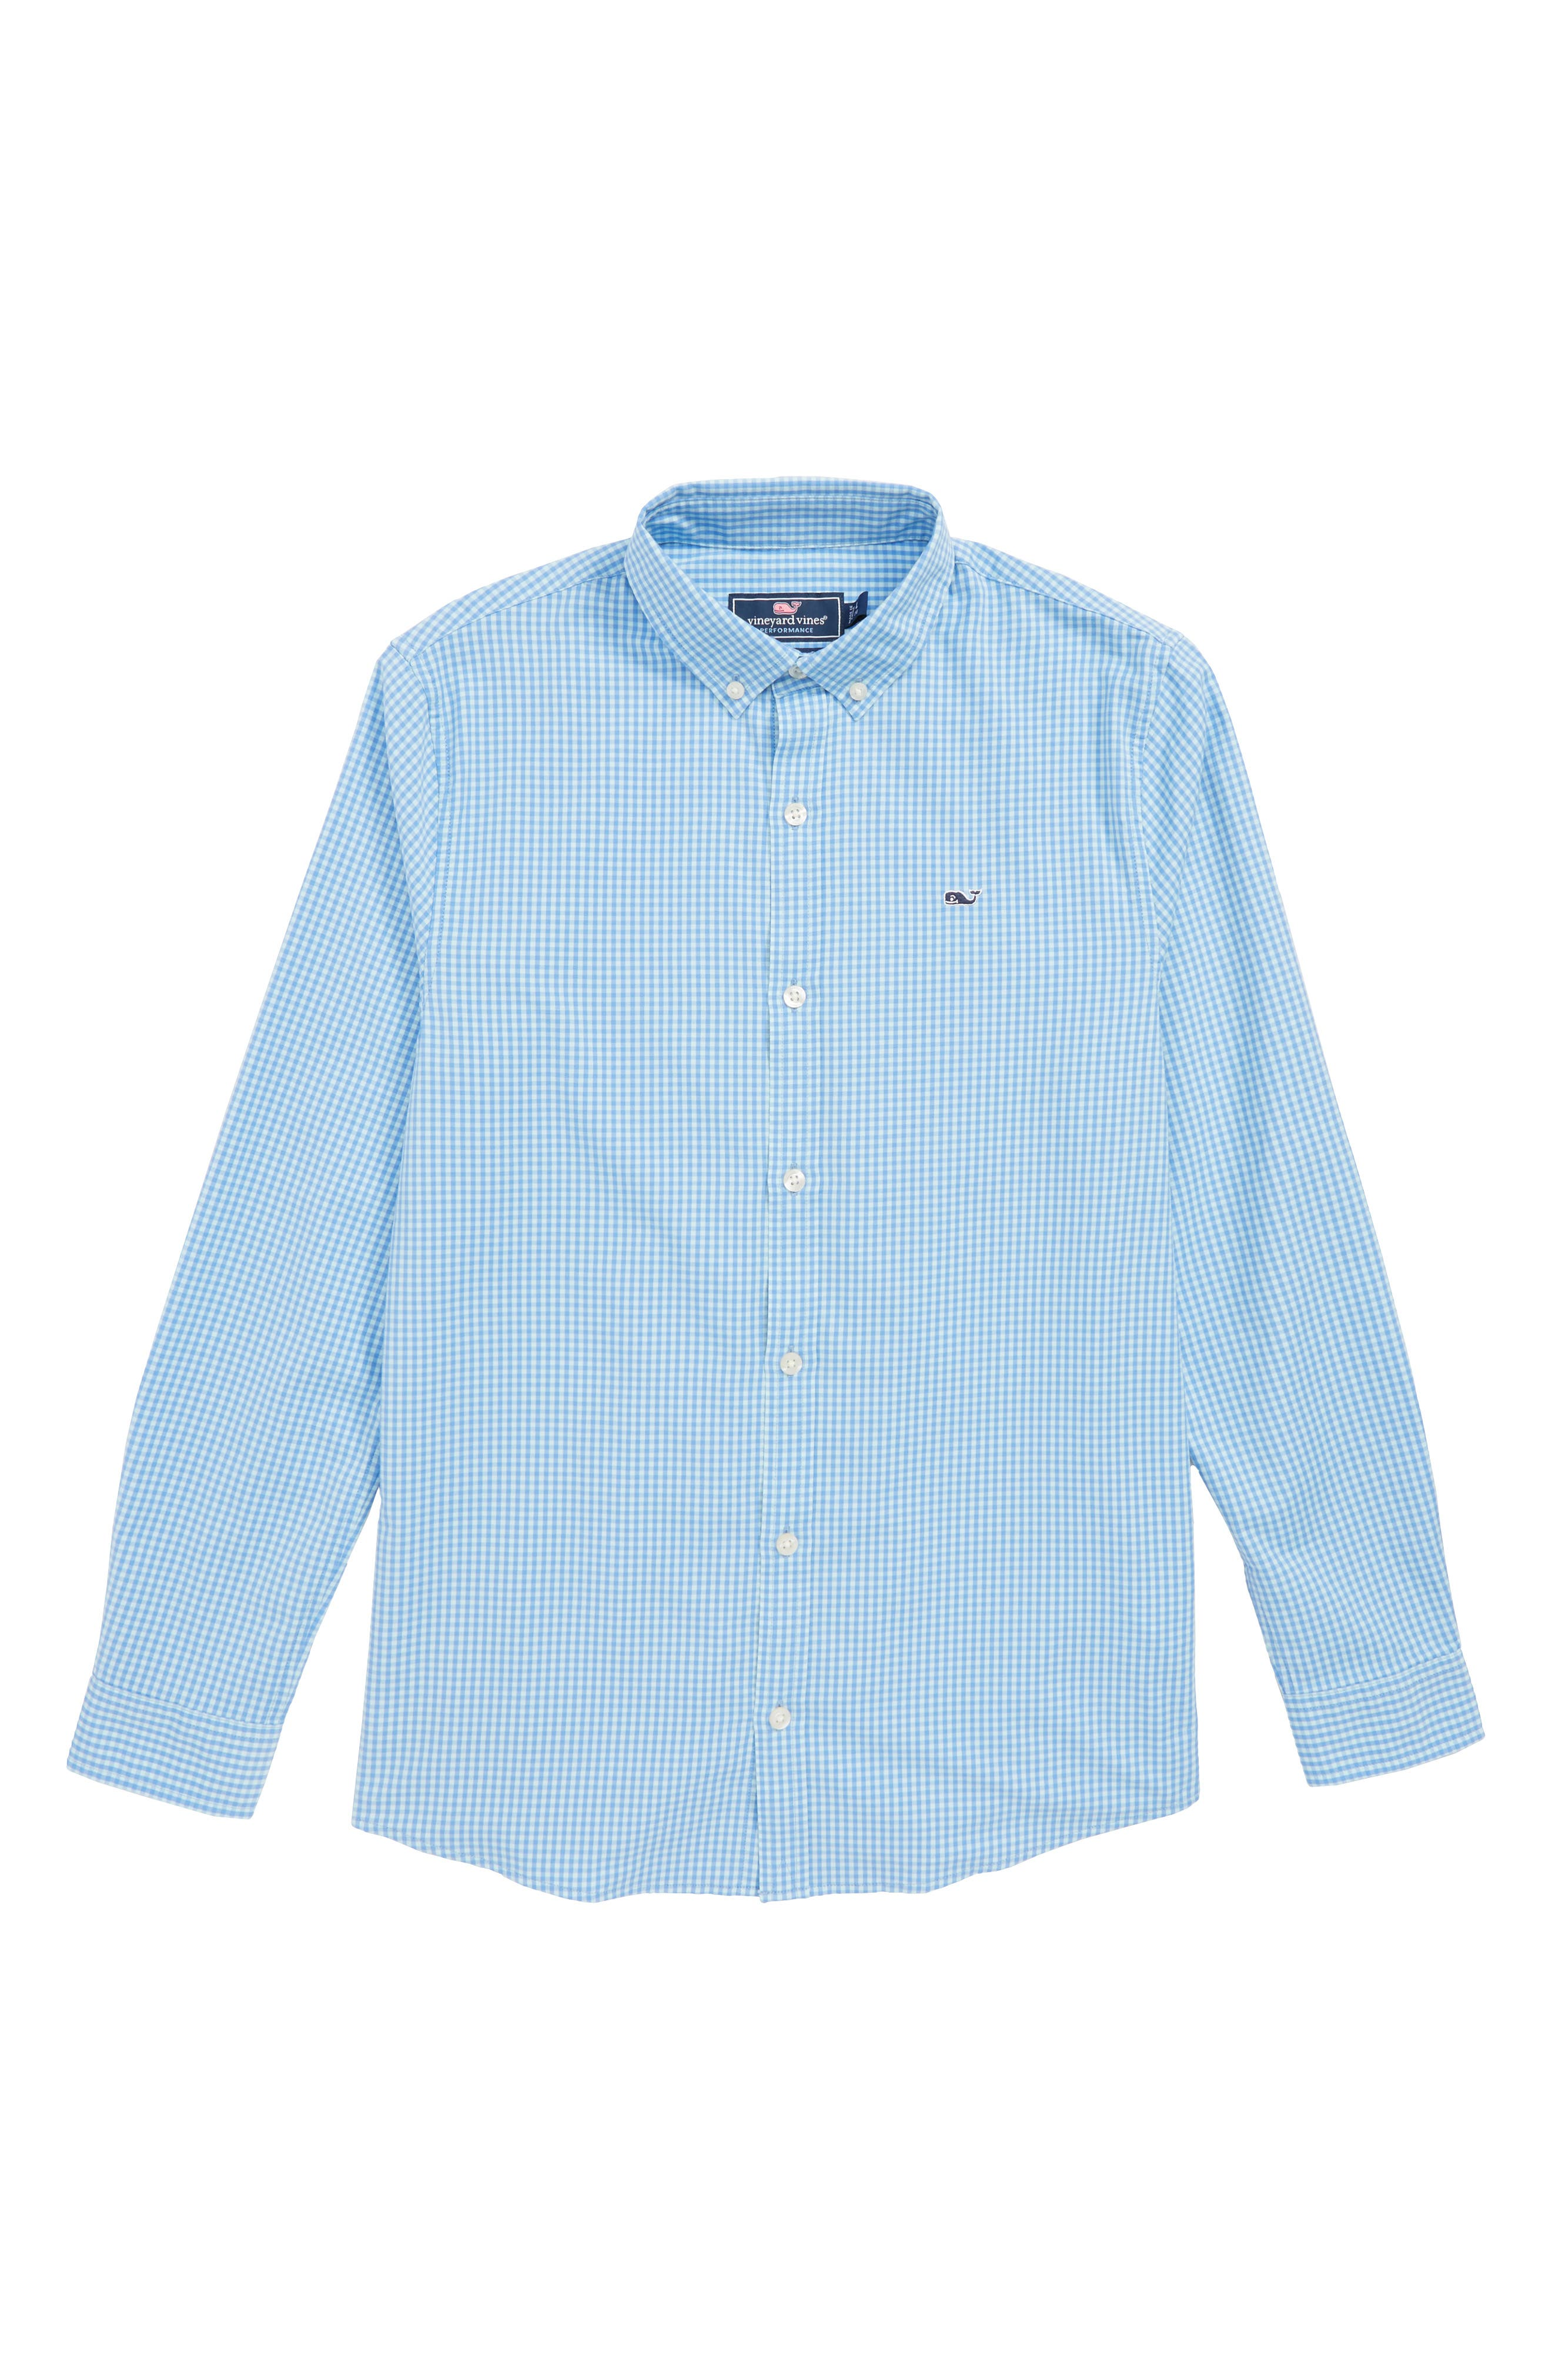 Mink Meadow Check Performance Sport Shirt,                         Main,                         color, 400